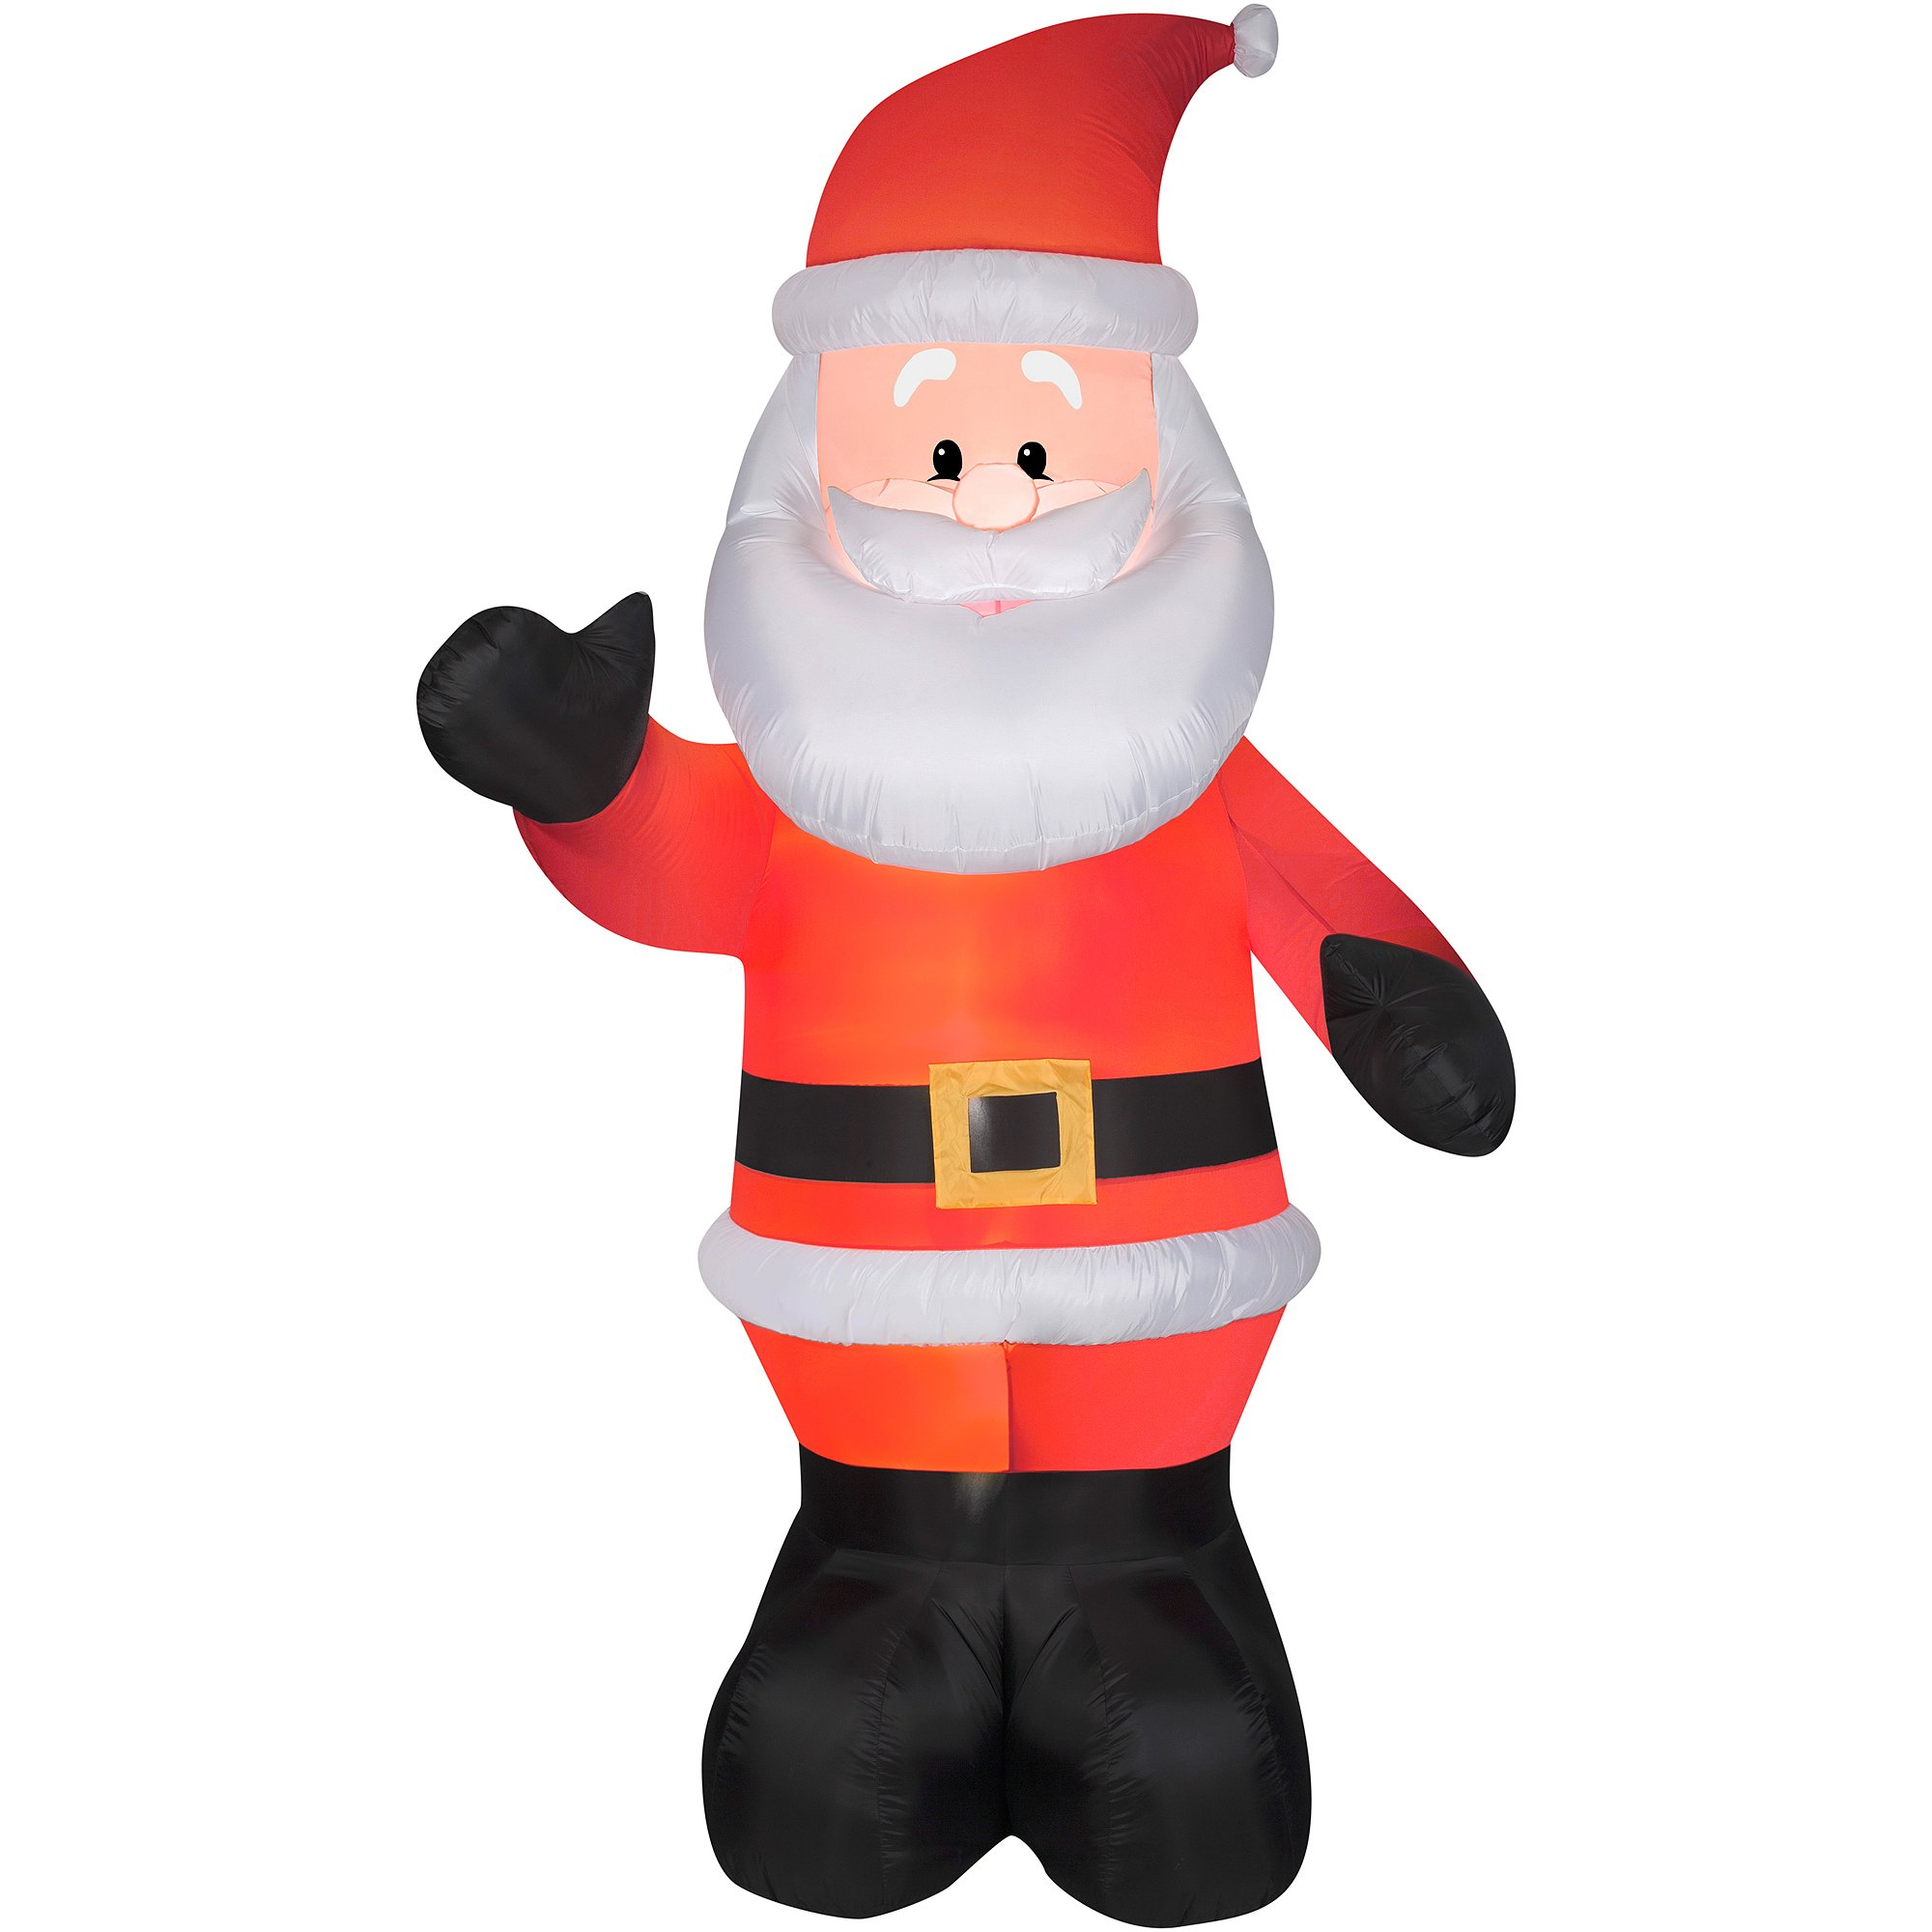 10' Airblown Inflatable Santa Christmas Inflatable by Gemmy Airblown